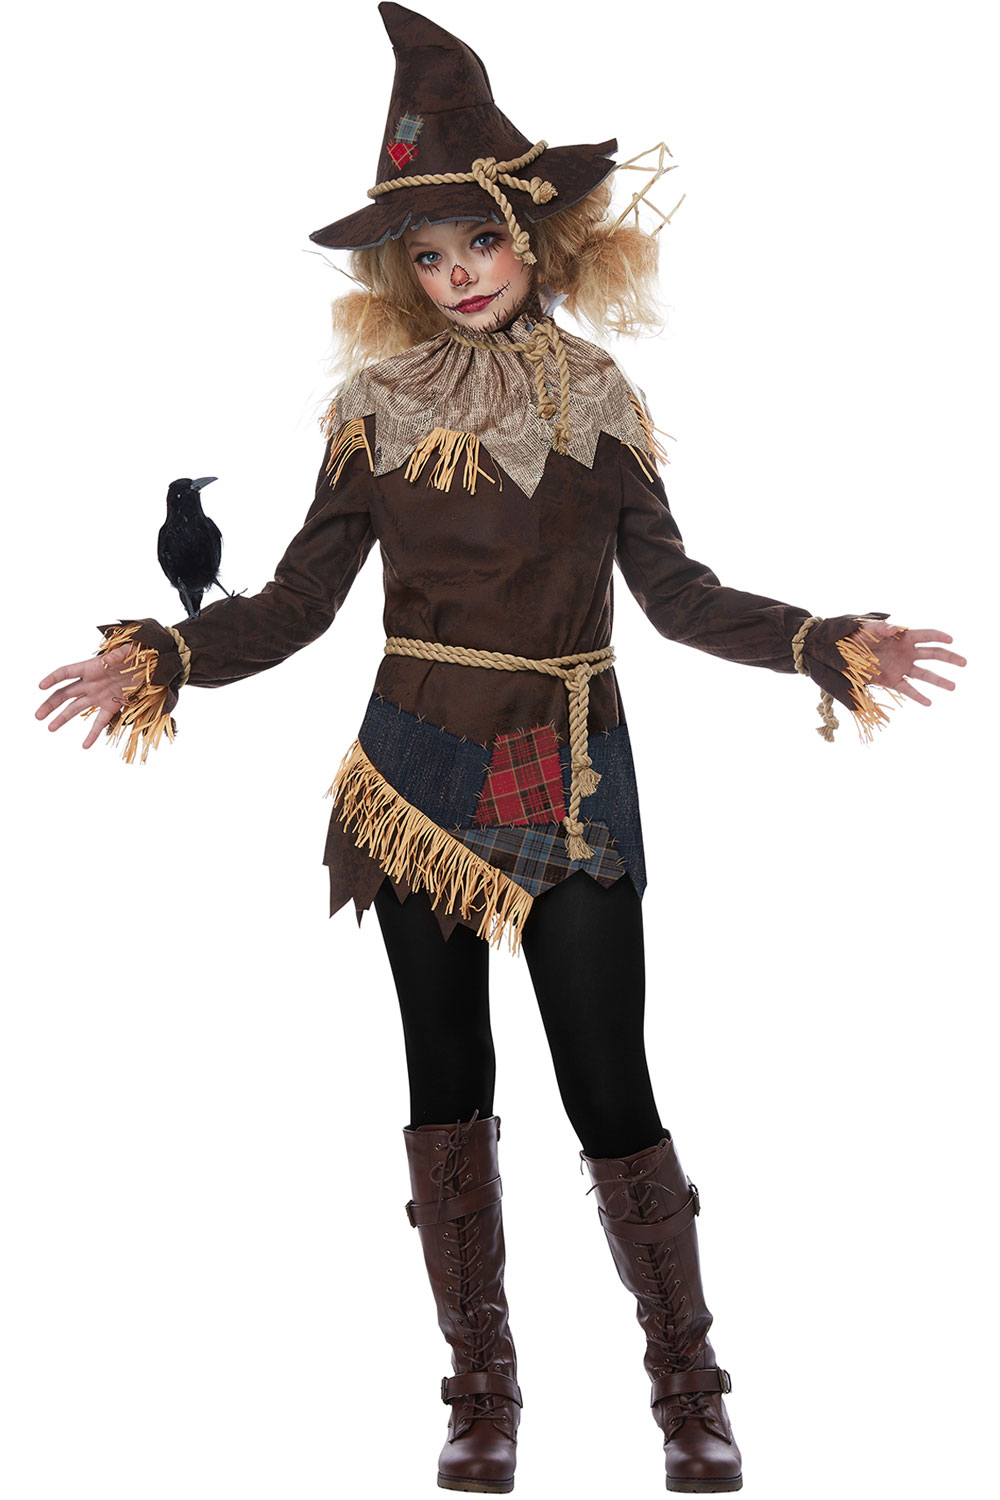 Scary Spooky Creepy Straw Puppet Scarecrow Halloween Costume